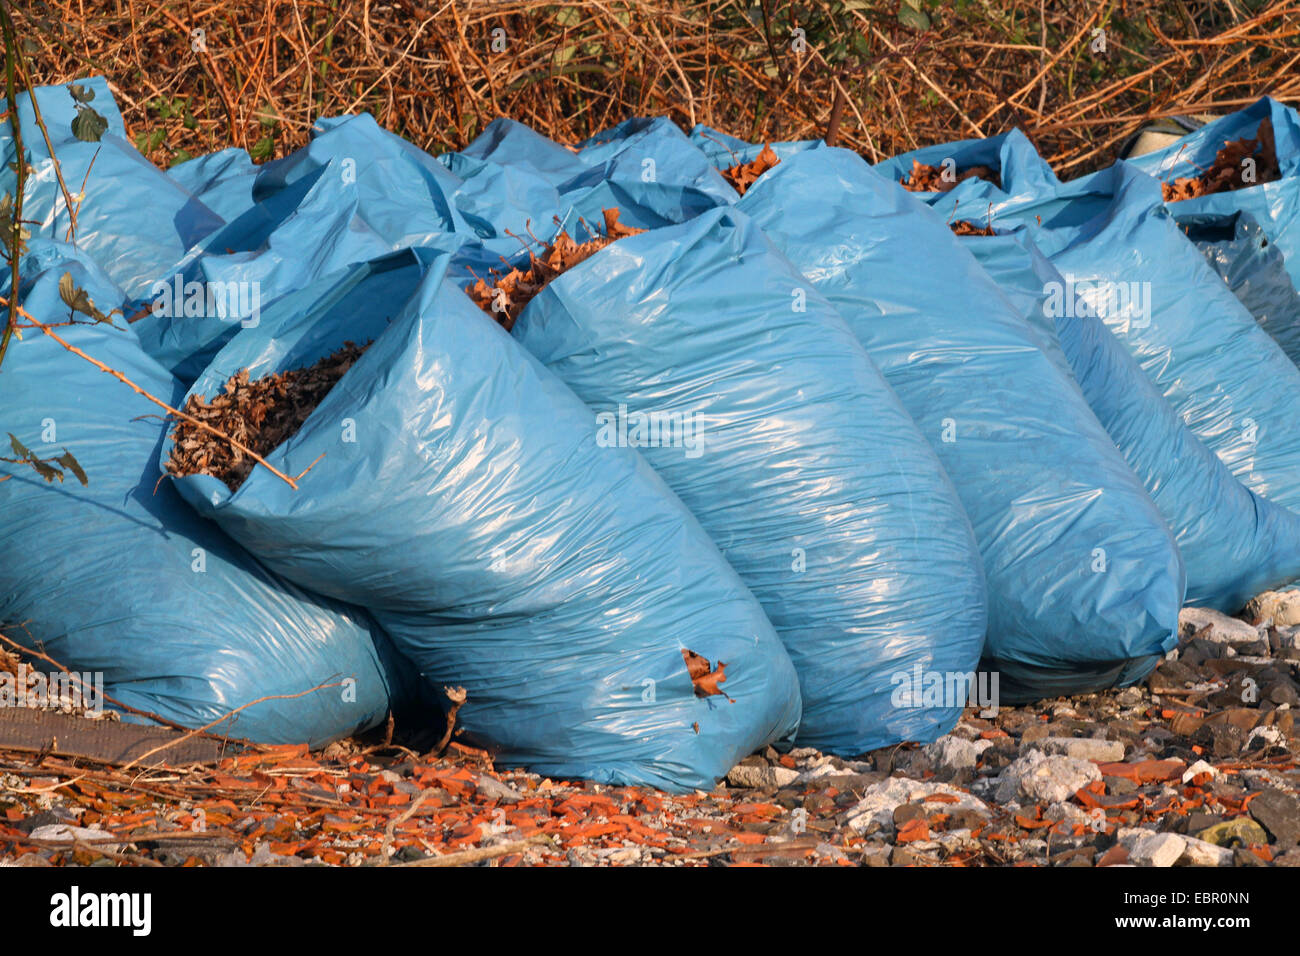 autumn leaves collected in blue rubbish bags, Germany - Stock Image